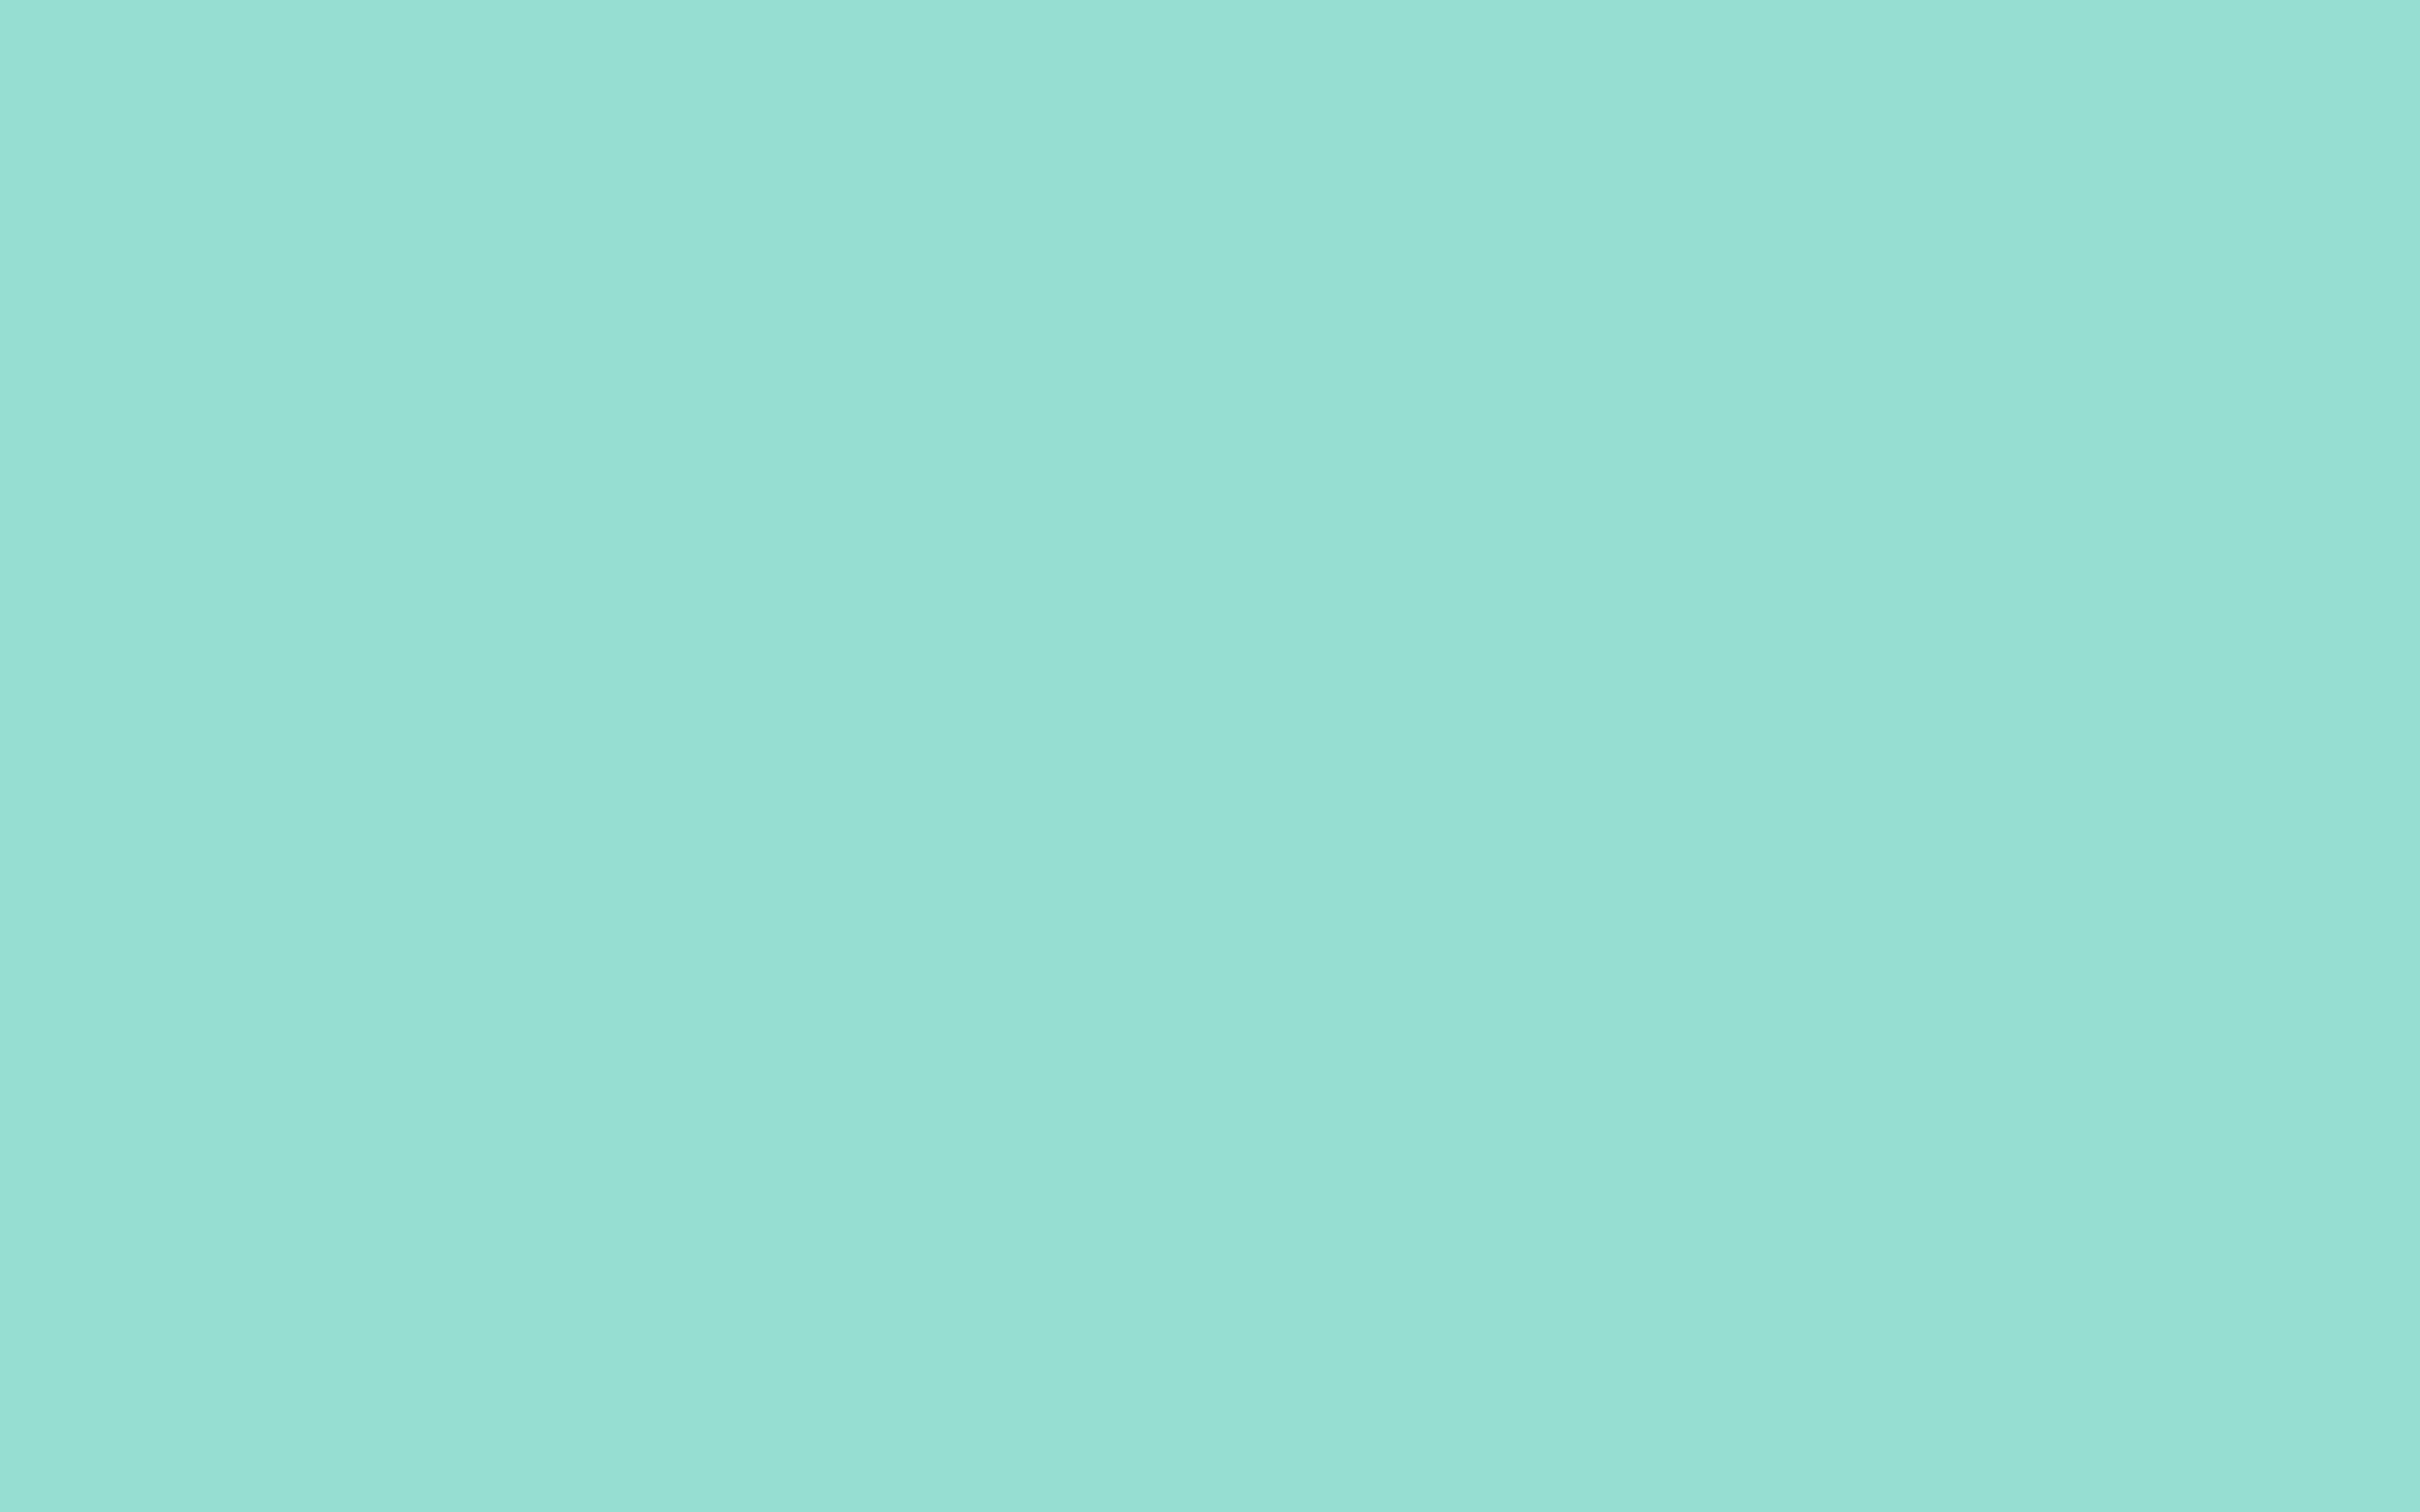 2880x1800 Pale Robin Egg Blue Solid Color Background